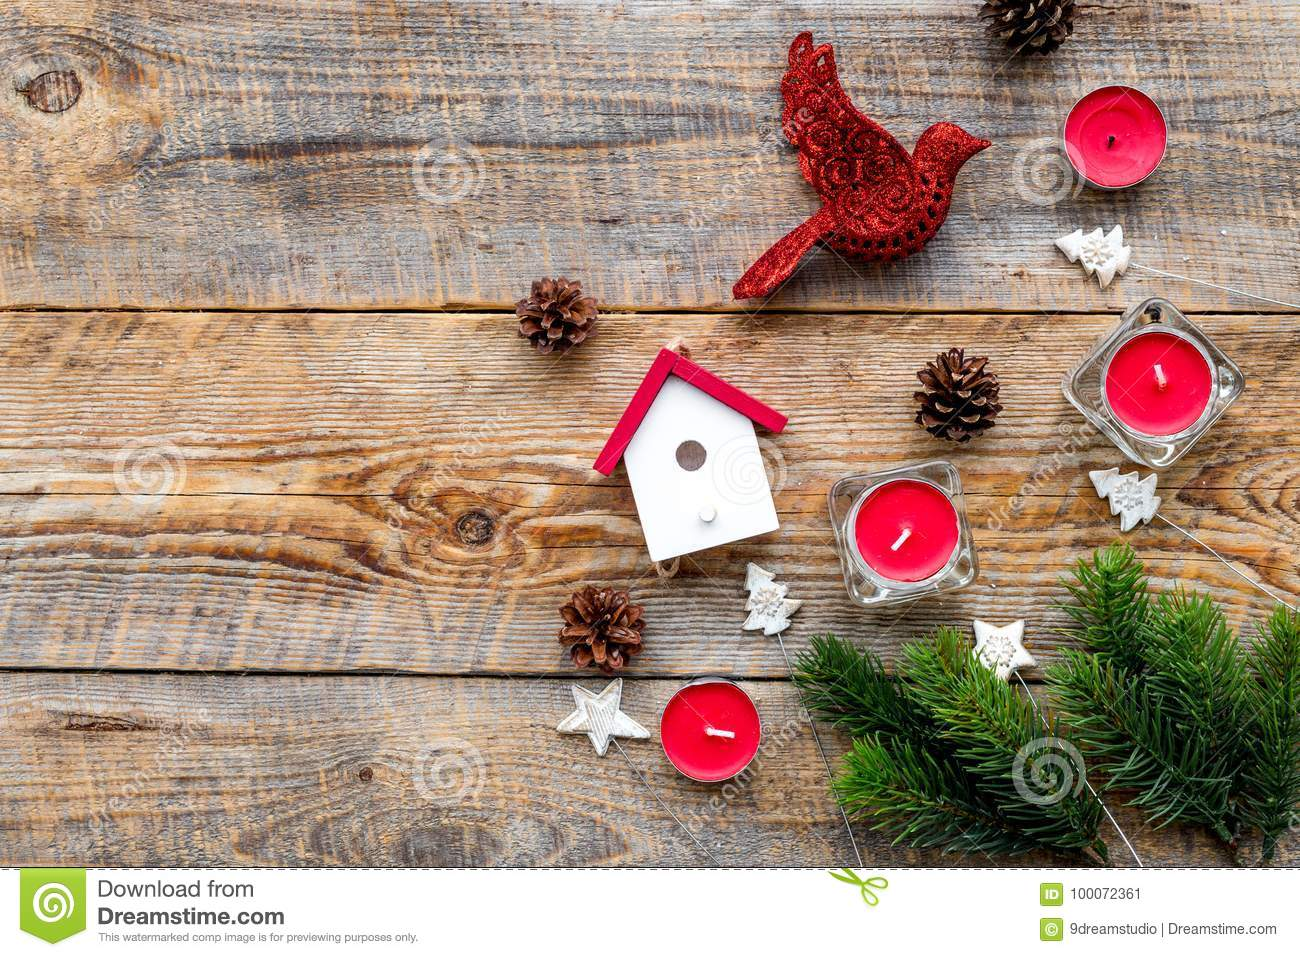 download new year decorations with bird house toys and christmas tree branche on wooden background - Bird House Christmas Decoration